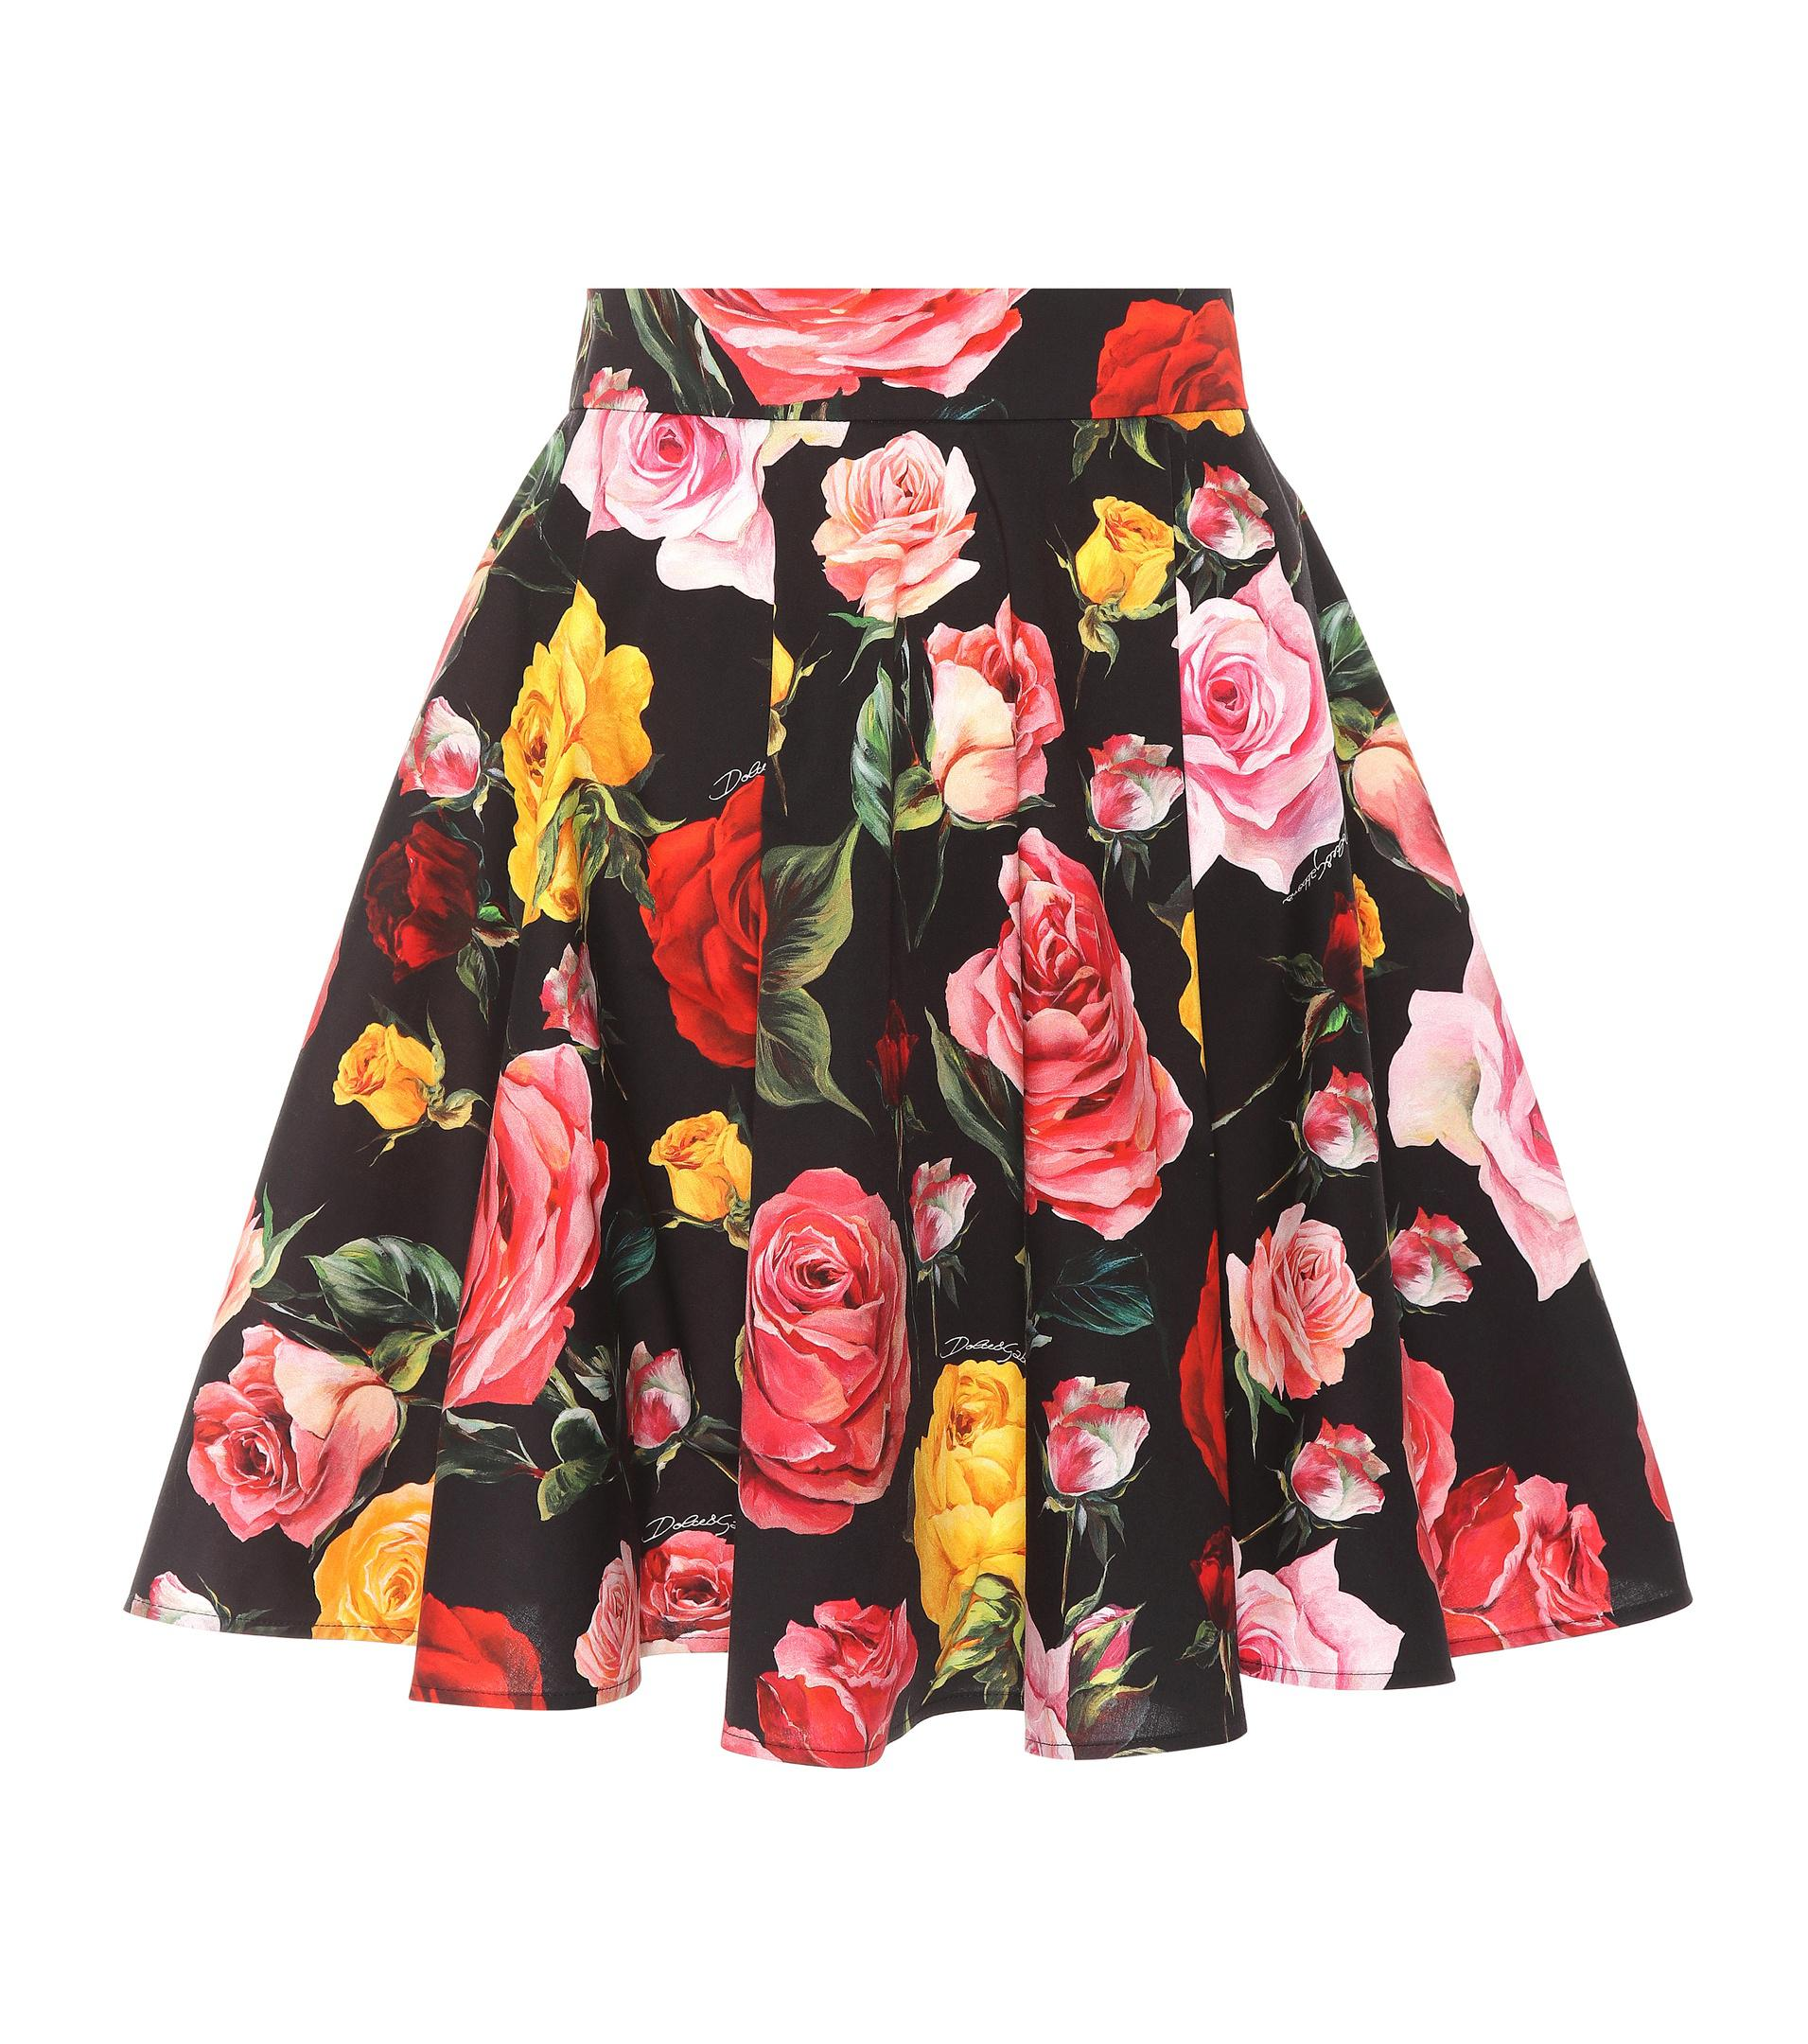 Floral-printed cotton skirt Dolce & Gabbana Outlet From China Cheap Usa Stockist Discount Top Quality Cheap Prices Authentic Fik2joj9